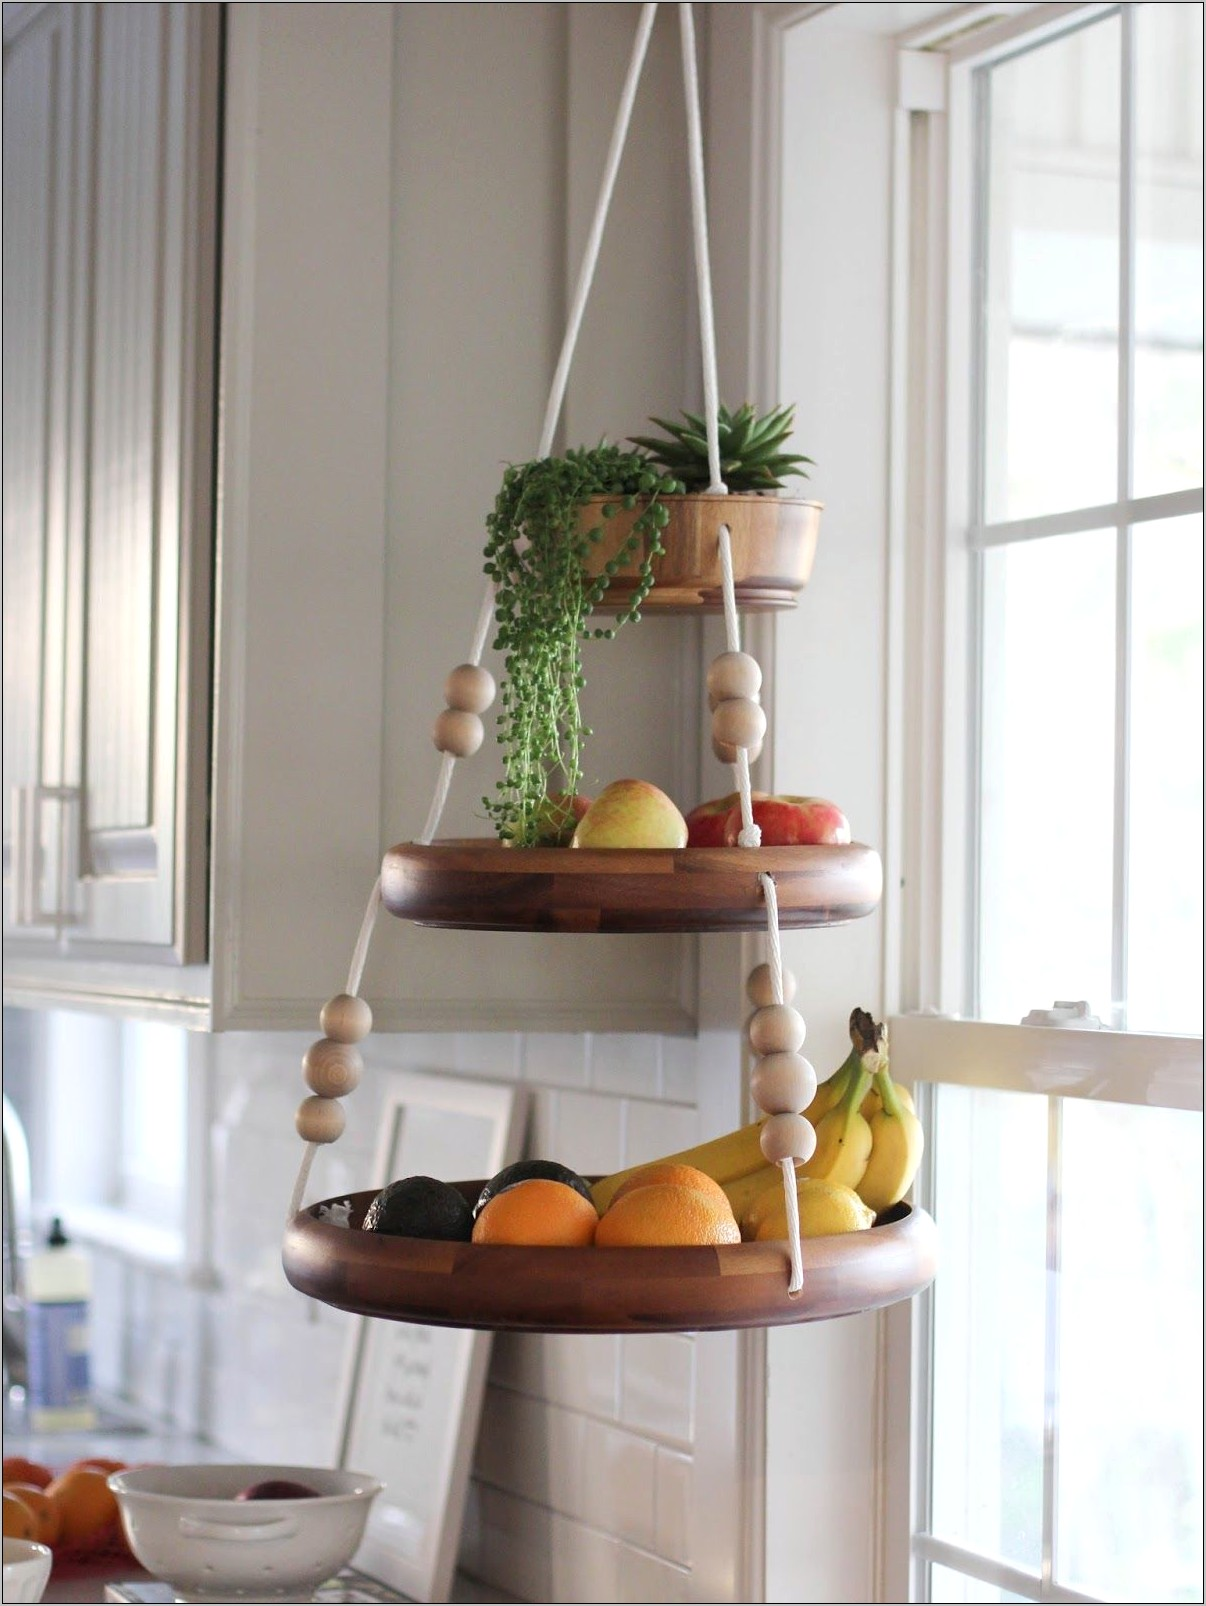 Interior Decoration Baskets Hanging In Kitchen